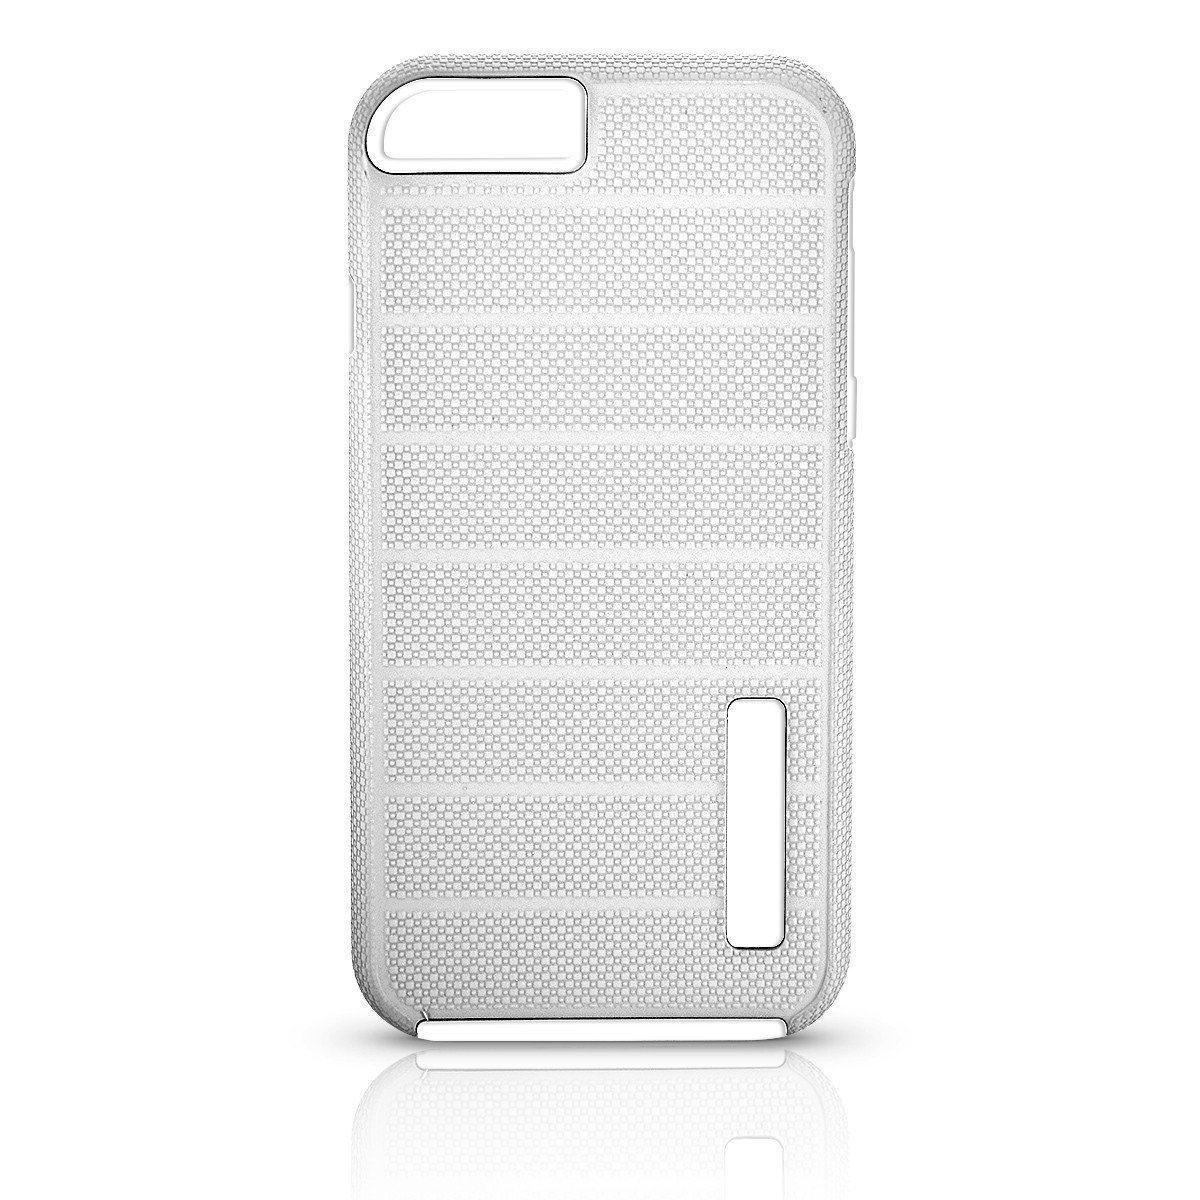 Destiny Case For I6 Plus - Silver